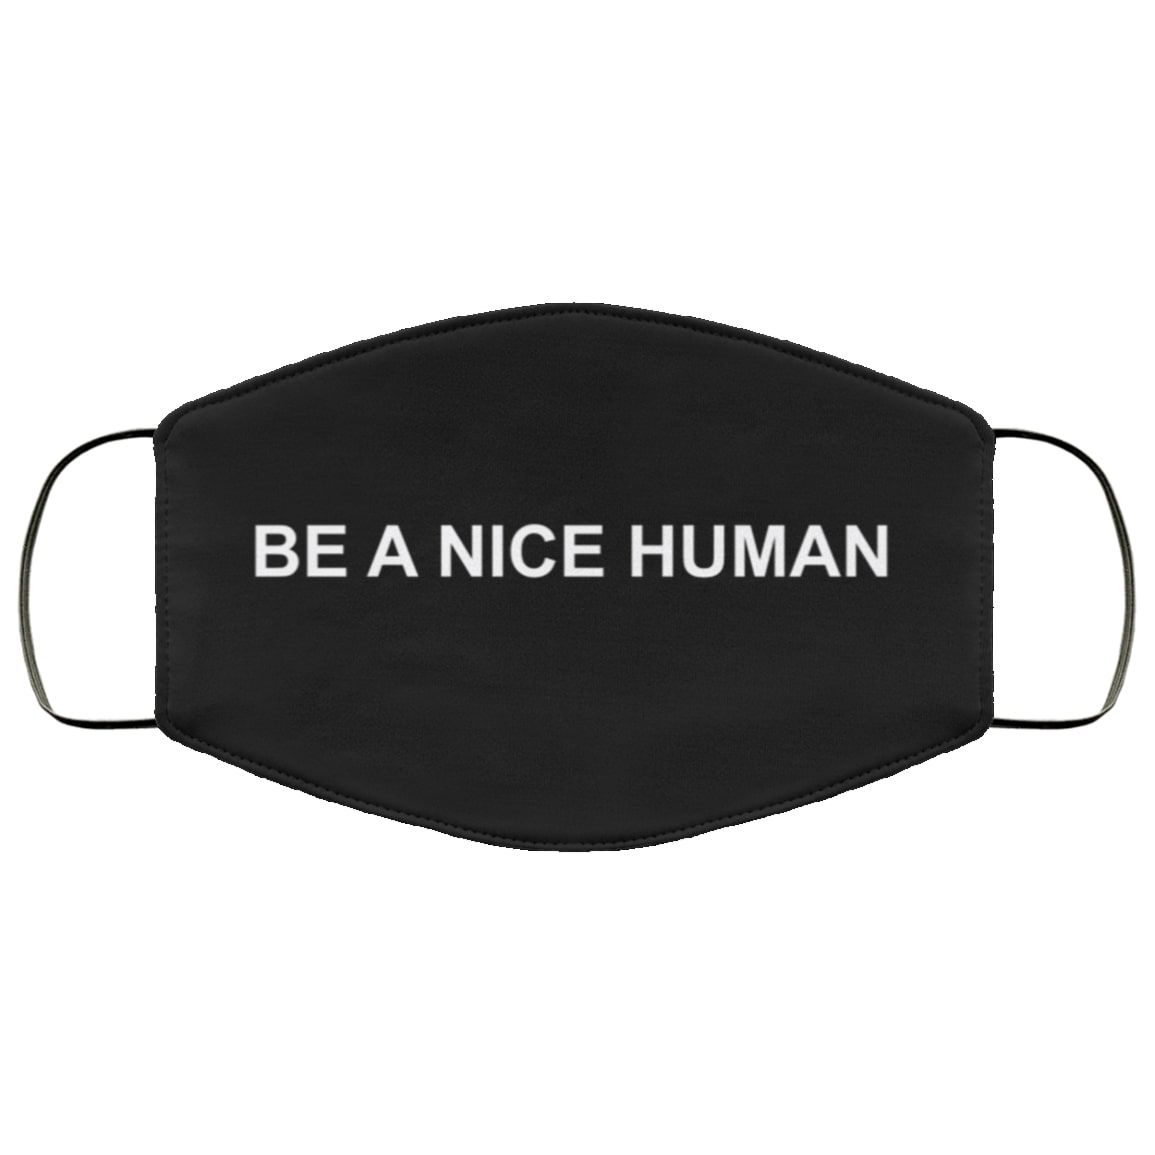 Be a nice human full over printed face mask 1